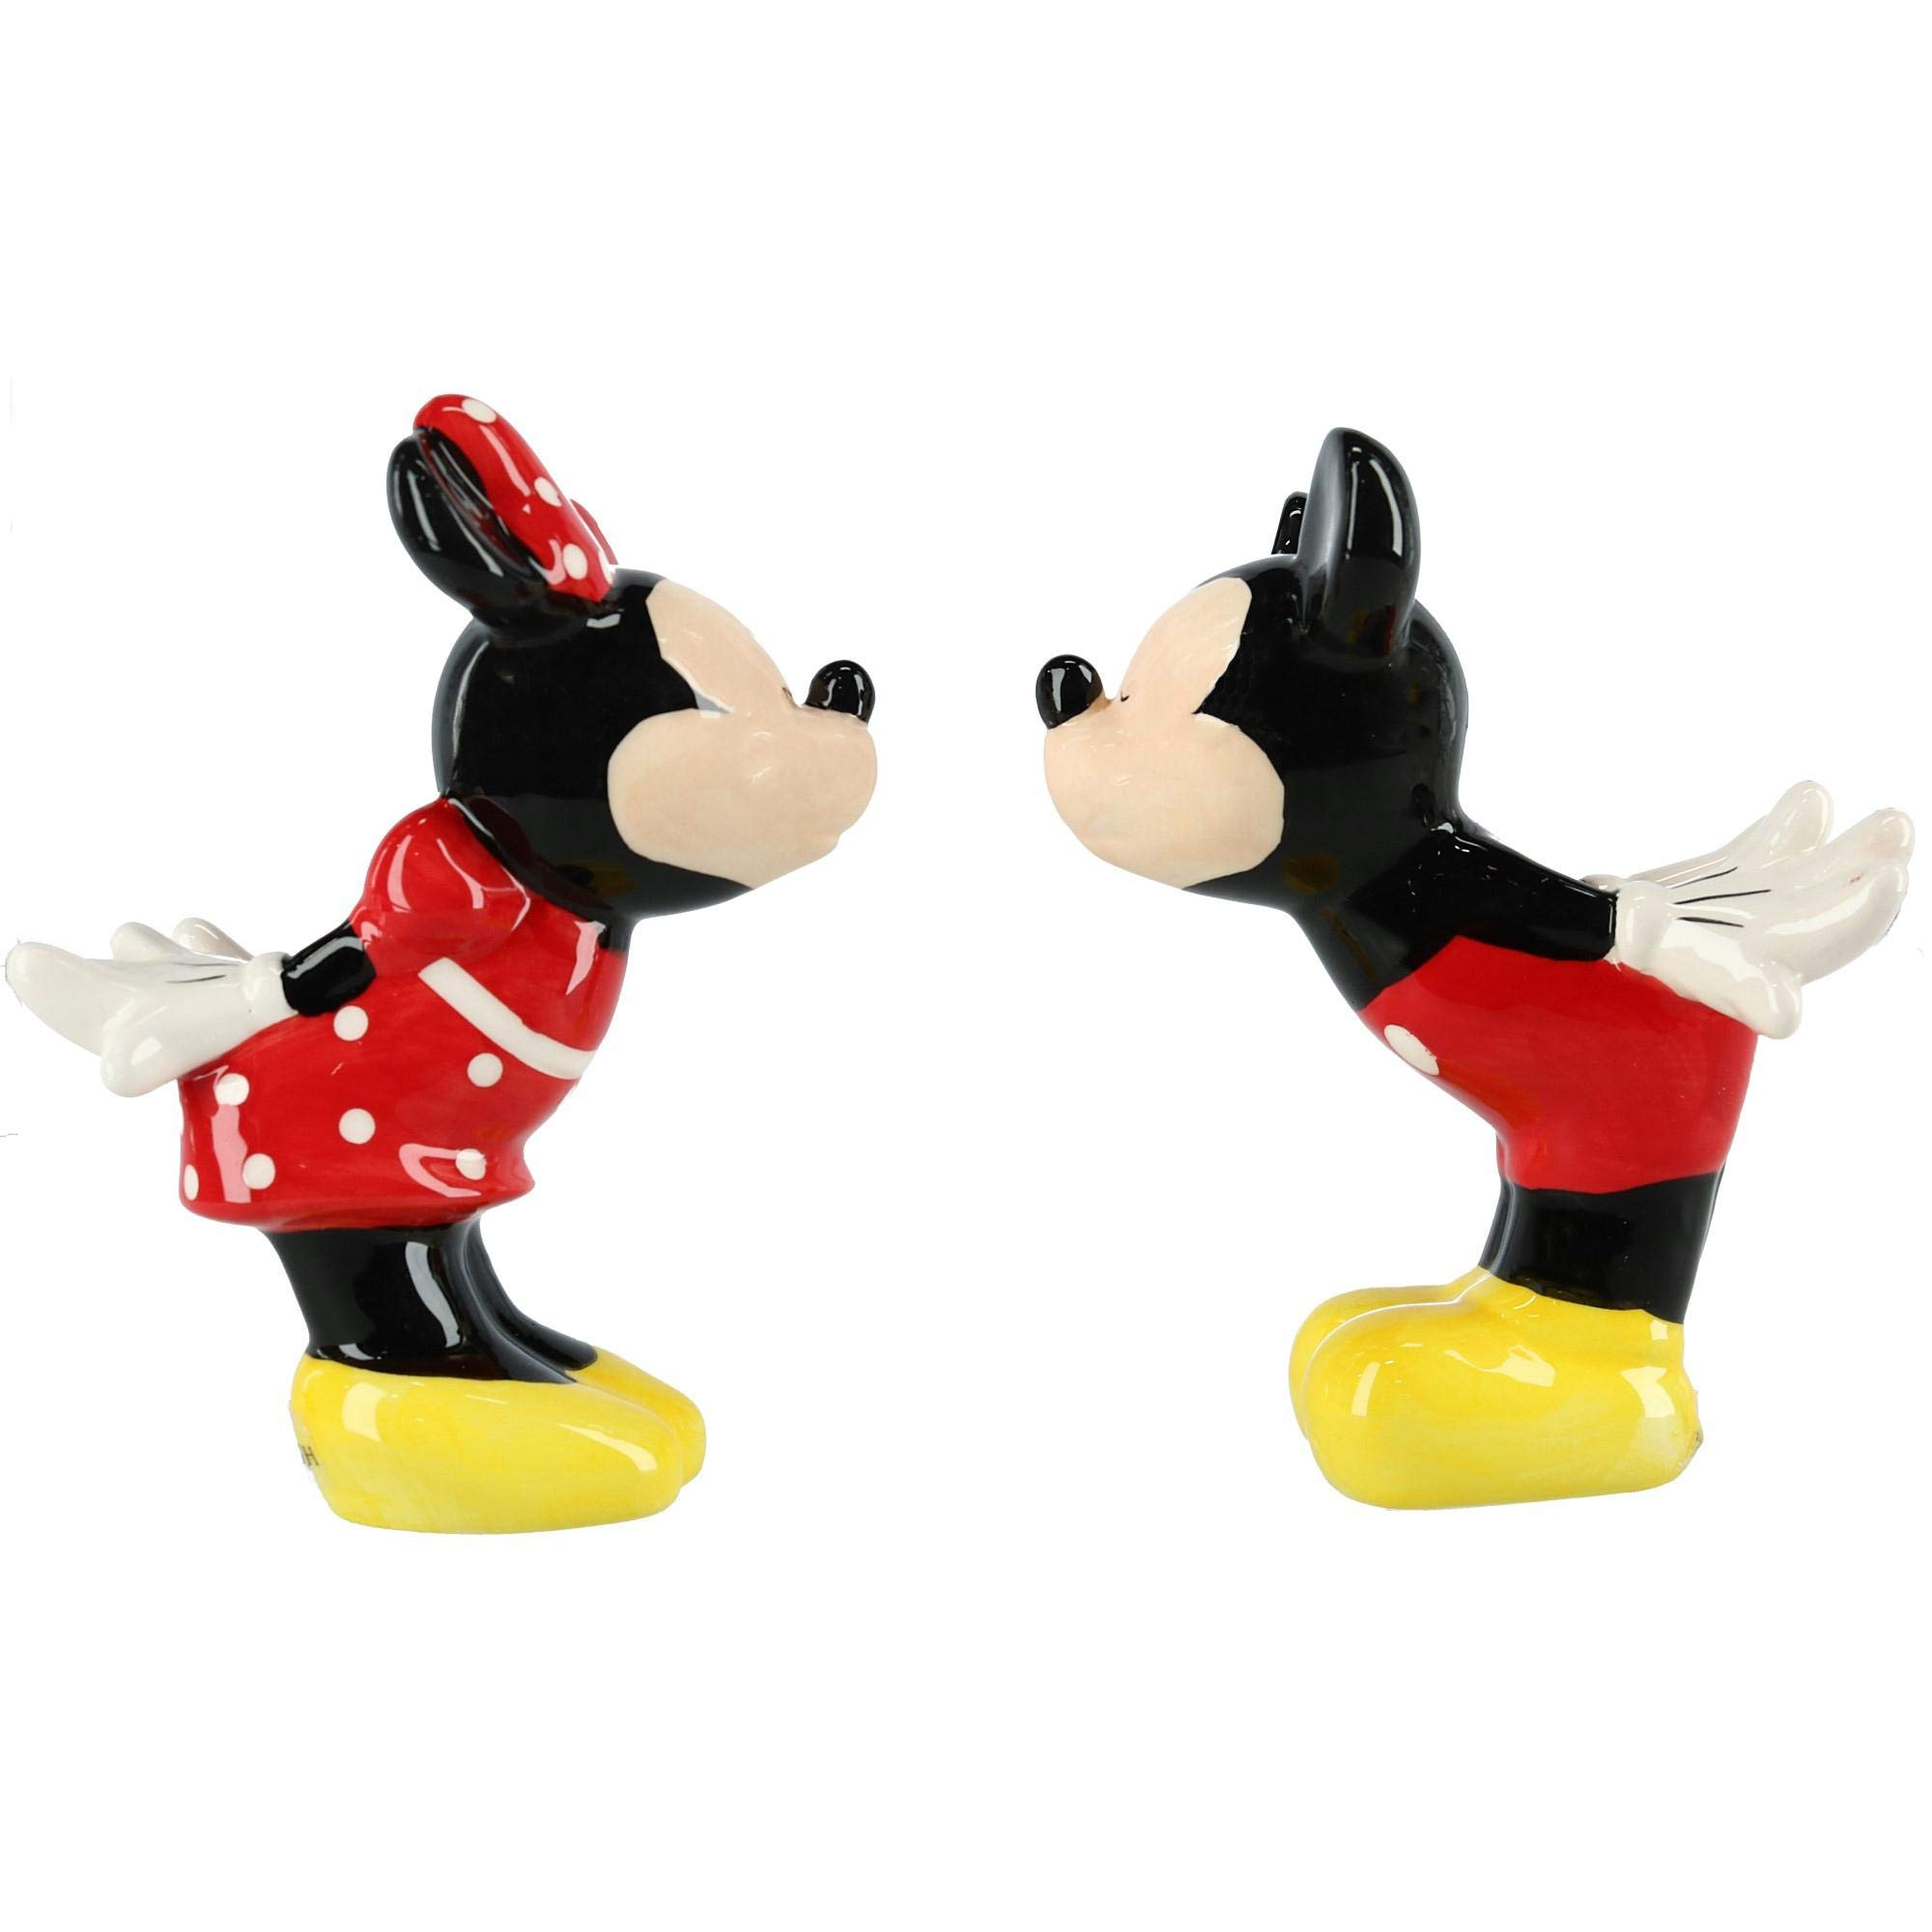 Mickey and Minnie Mouse Spice of Life Salt & Pepper Shakers